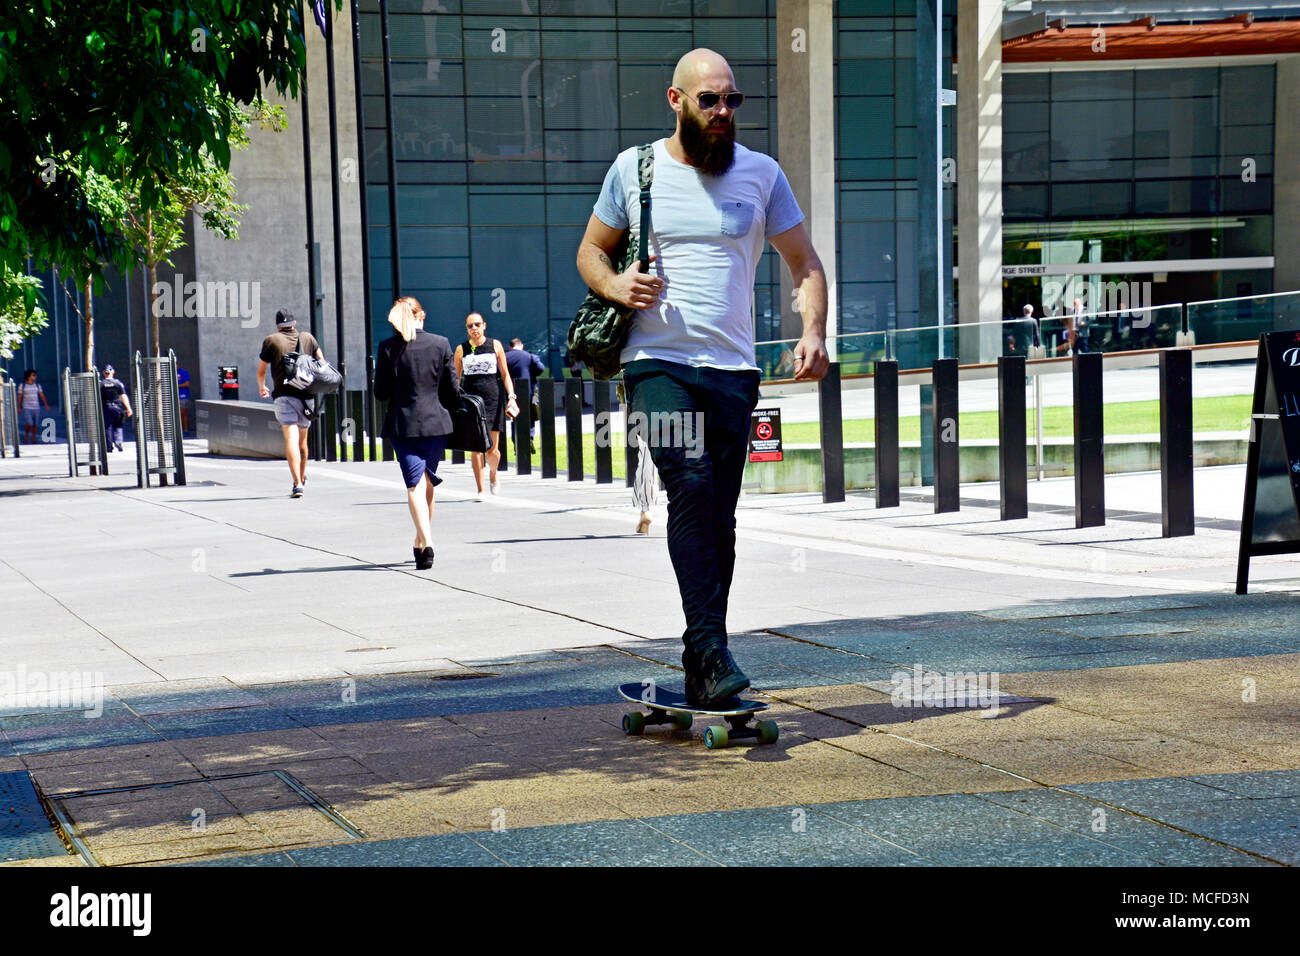 MAN ON A SKATE BOARD - Stock Image